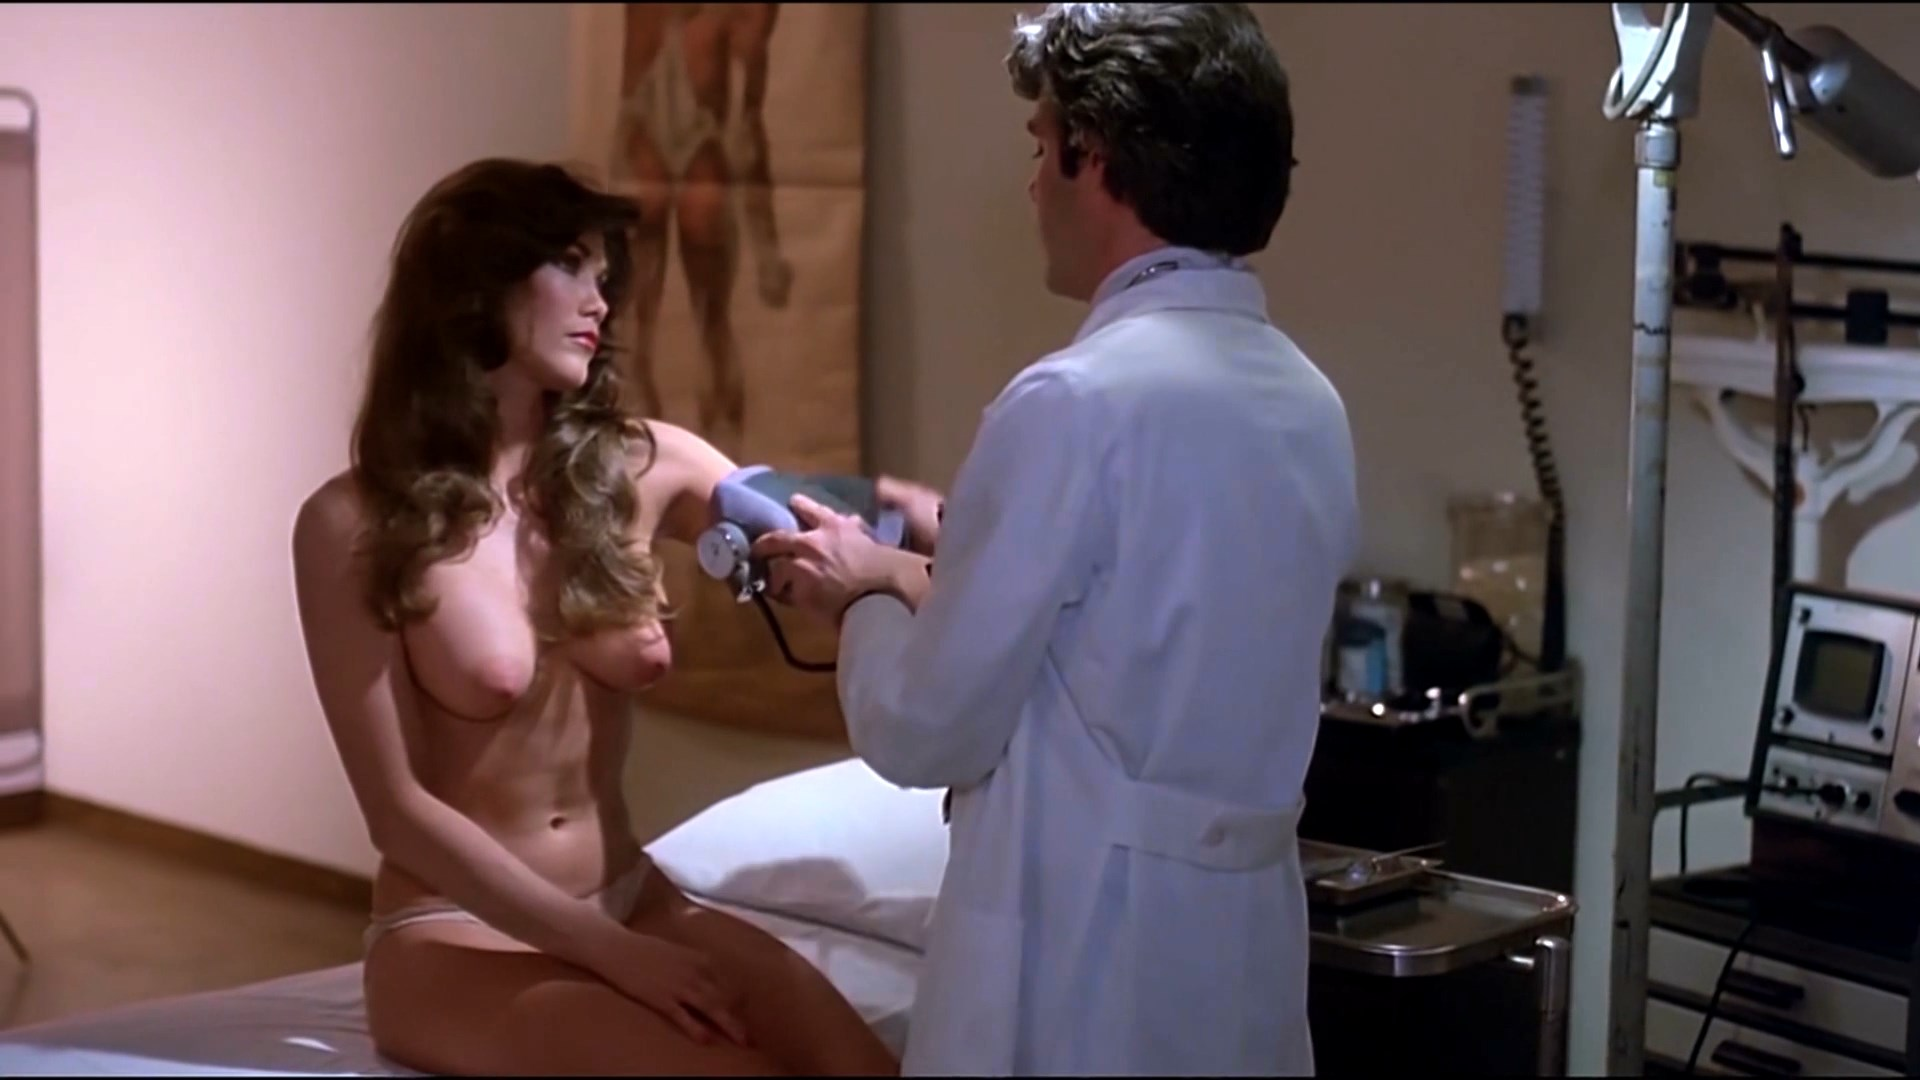 Barbi Benton - Hospital Masscare (1981) HD 1080p